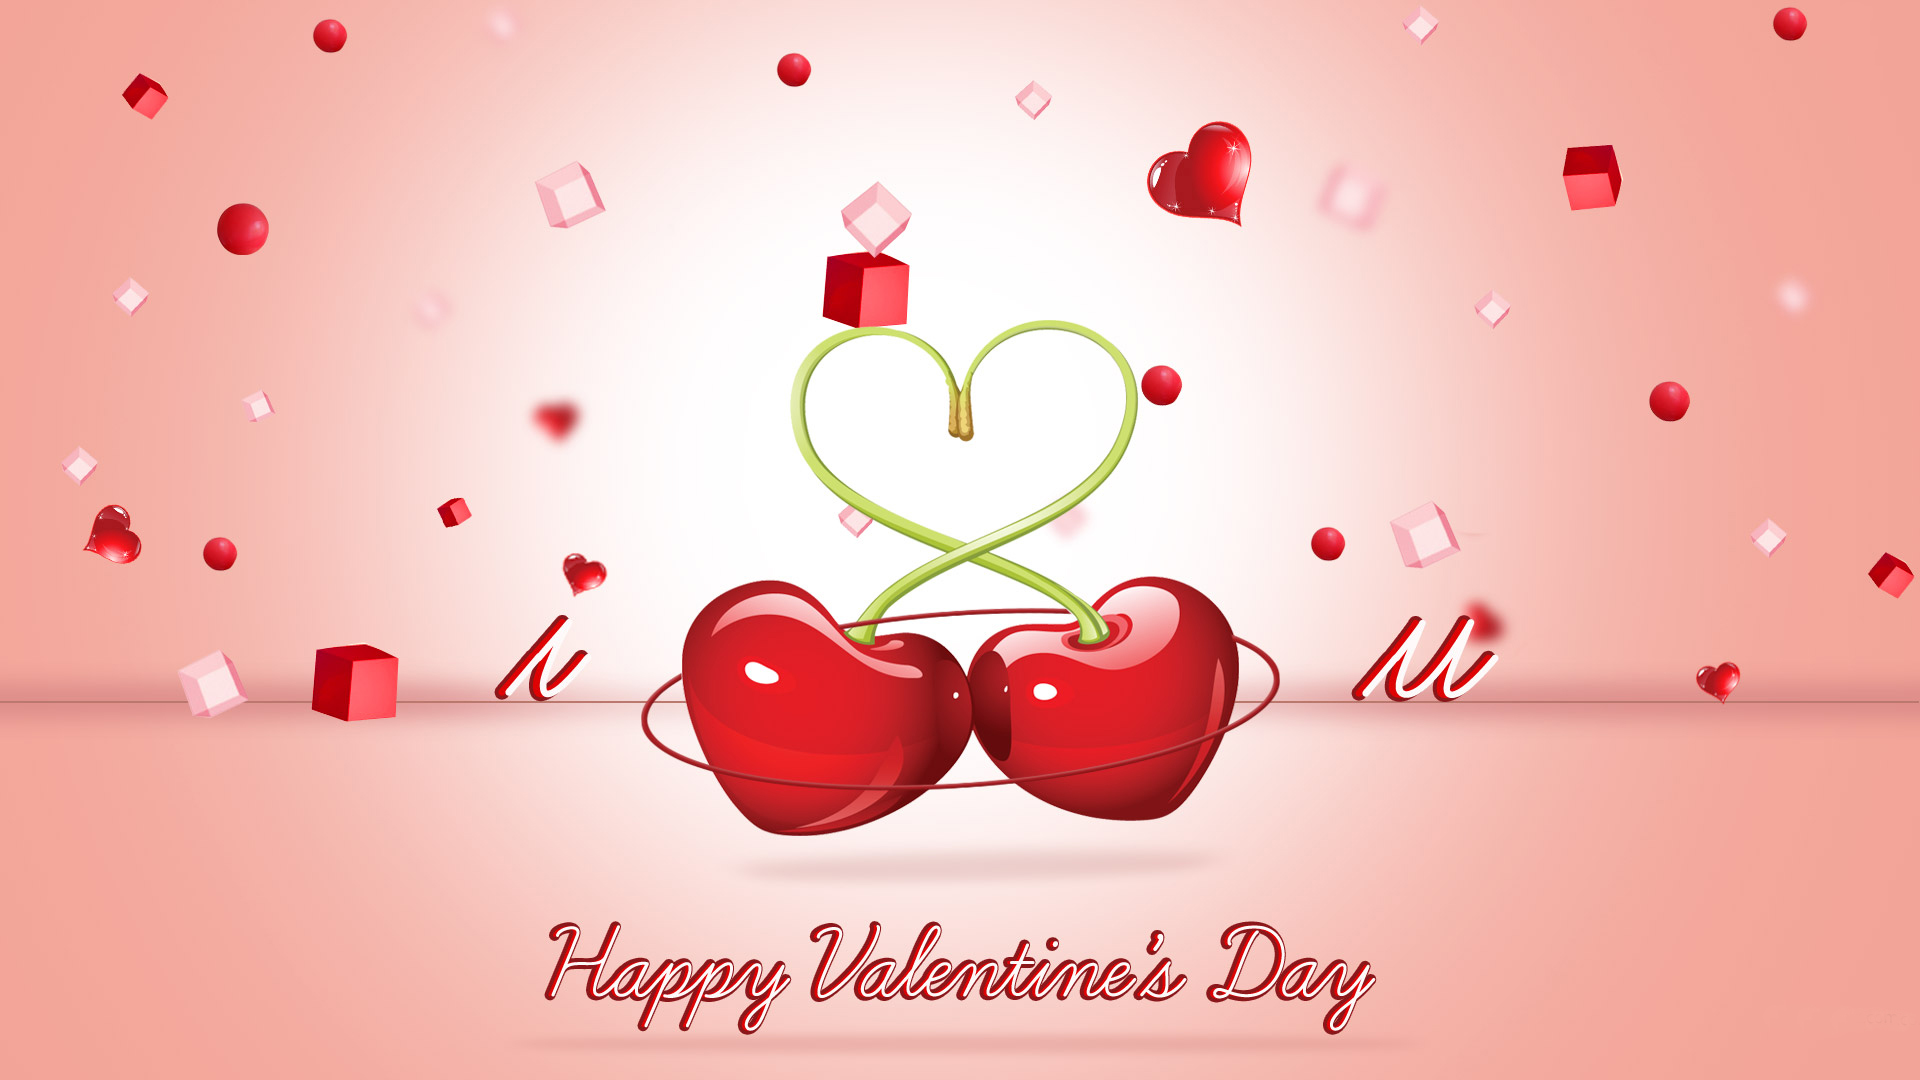 happy valentines day desktop wallpapers - Happy Valentines Day Pictures Free